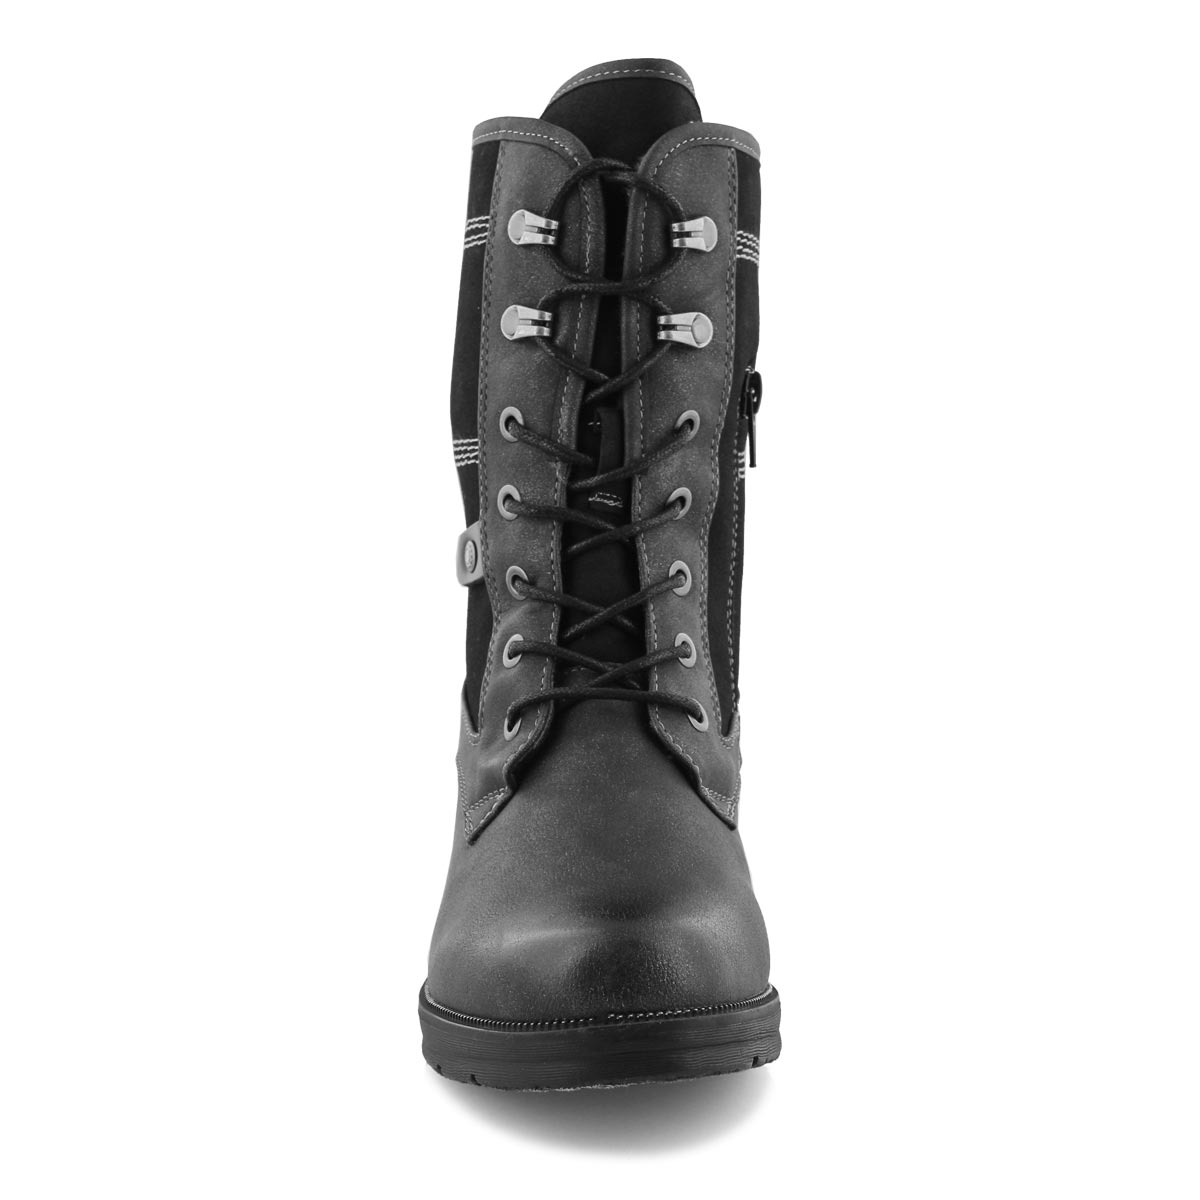 Lds Tanya 06 anthracite wtpf combat boot